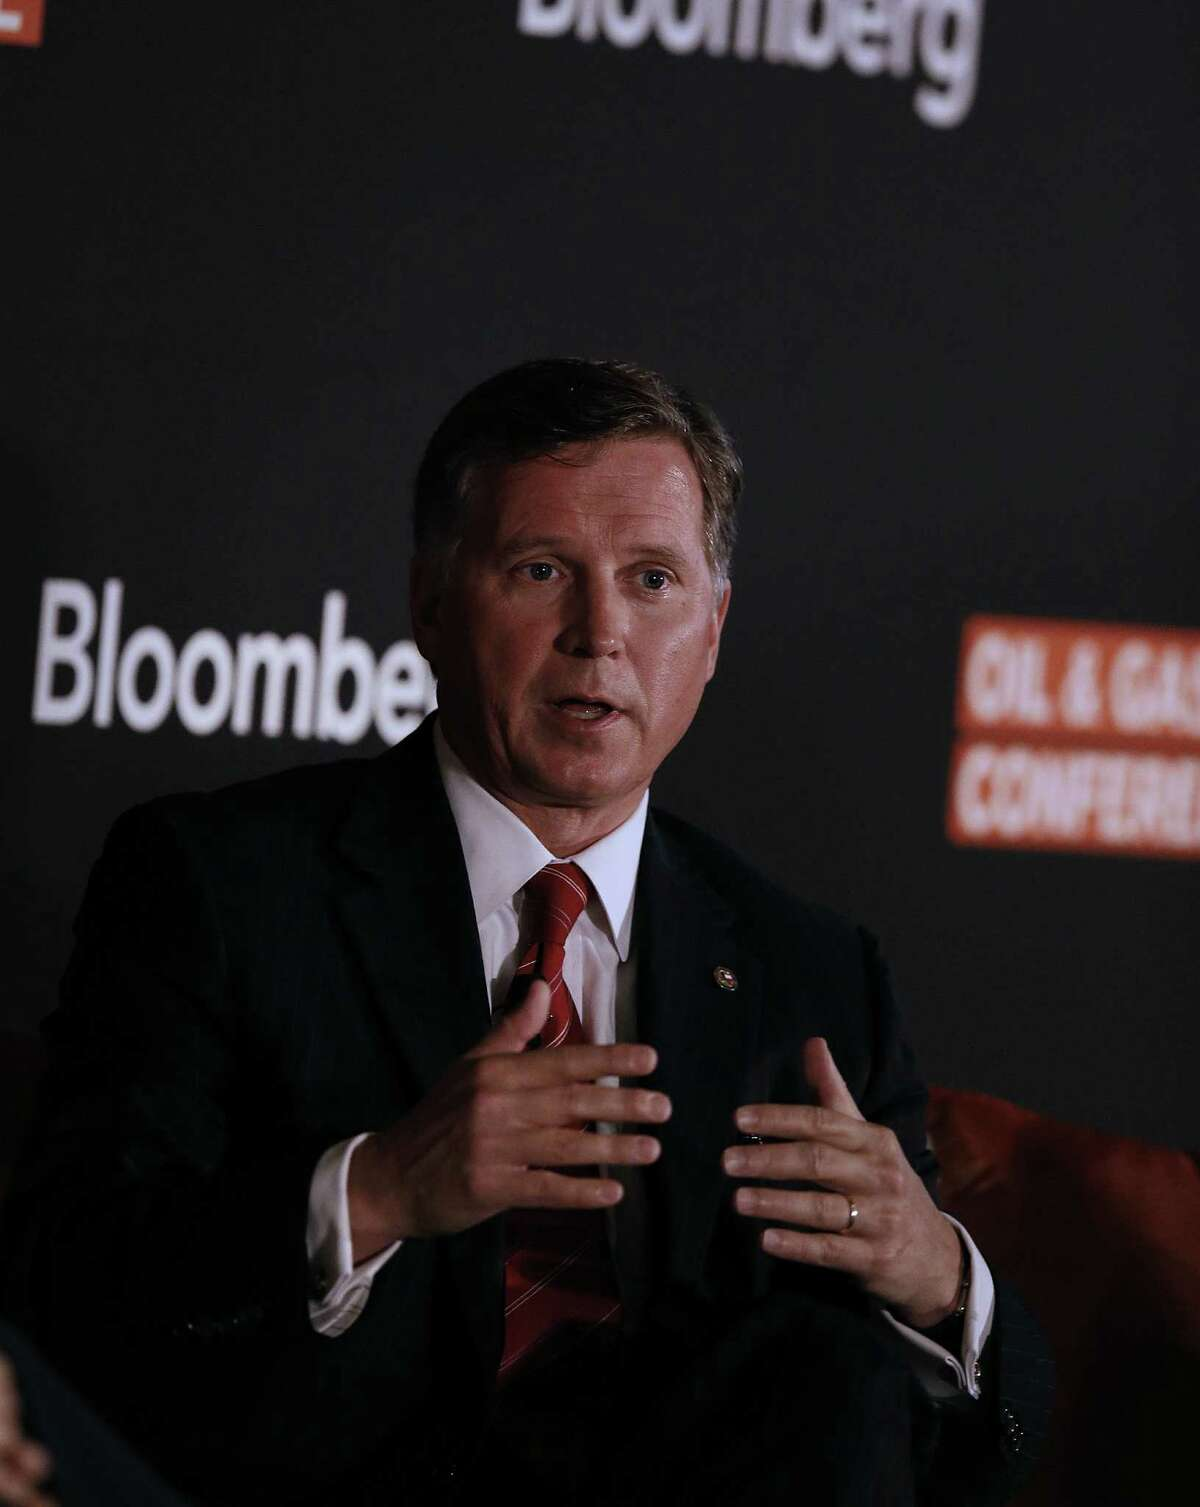 Barry Smitherman, chairman of the Texas Railroad Commission, speaks during the Bloomberg Link Oil & Gas Conference last year in Houston. A reader takes exception to the views Smitherman expressed regarding climate change in a recent Express-News series on the gas flaring in the Eagle Ford area.